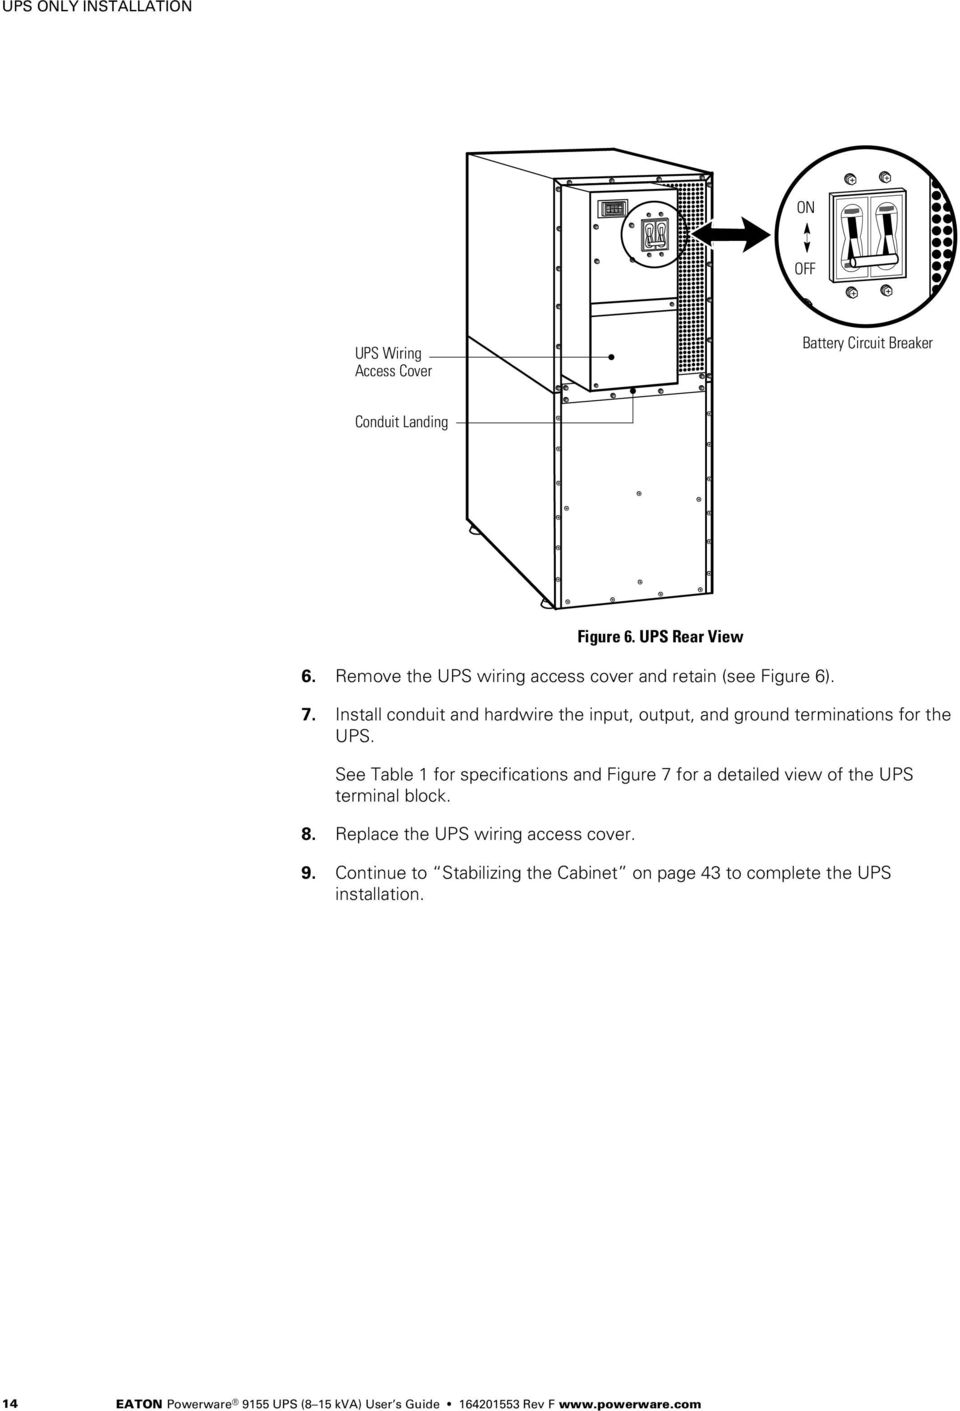 Powerware 9155 Ups 8 15 Kva User S Guide Pdf Wiring Diagram In Line Install Conduit And Hardwire The Input Output Ground Terminations For